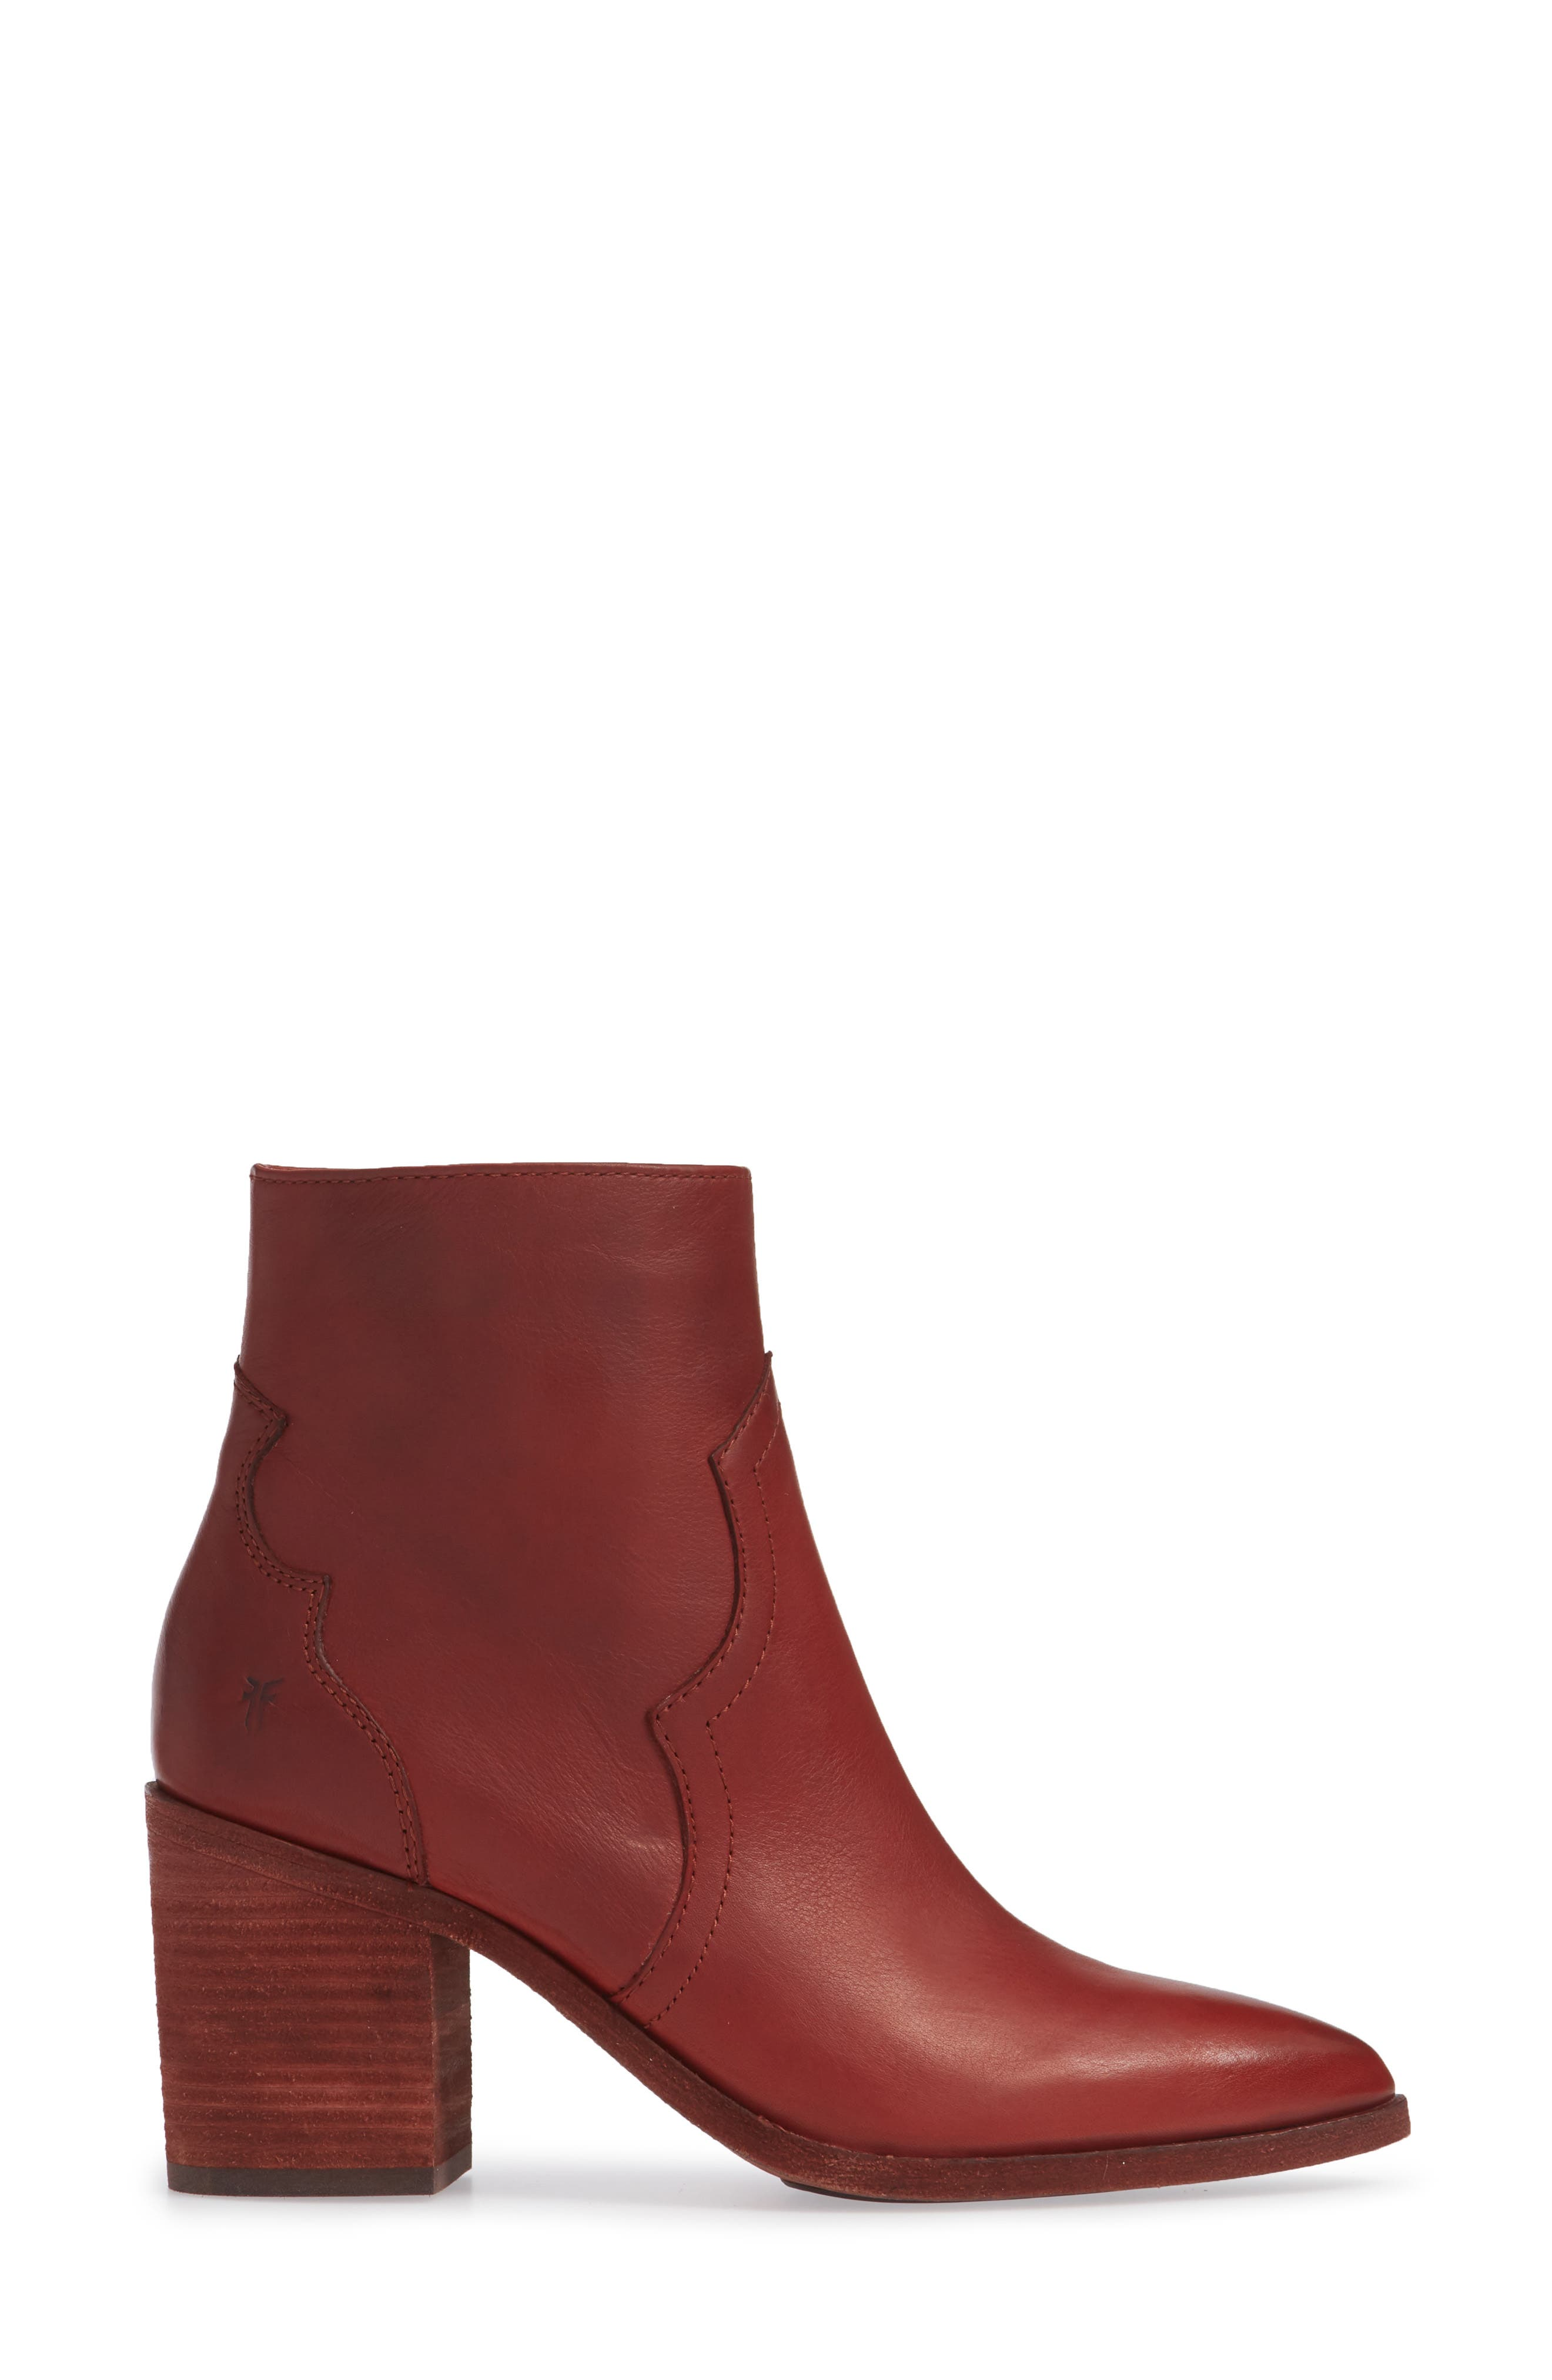 Flynn Bootie,                             Alternate thumbnail 3, color,                             RED CLAY LEATHER